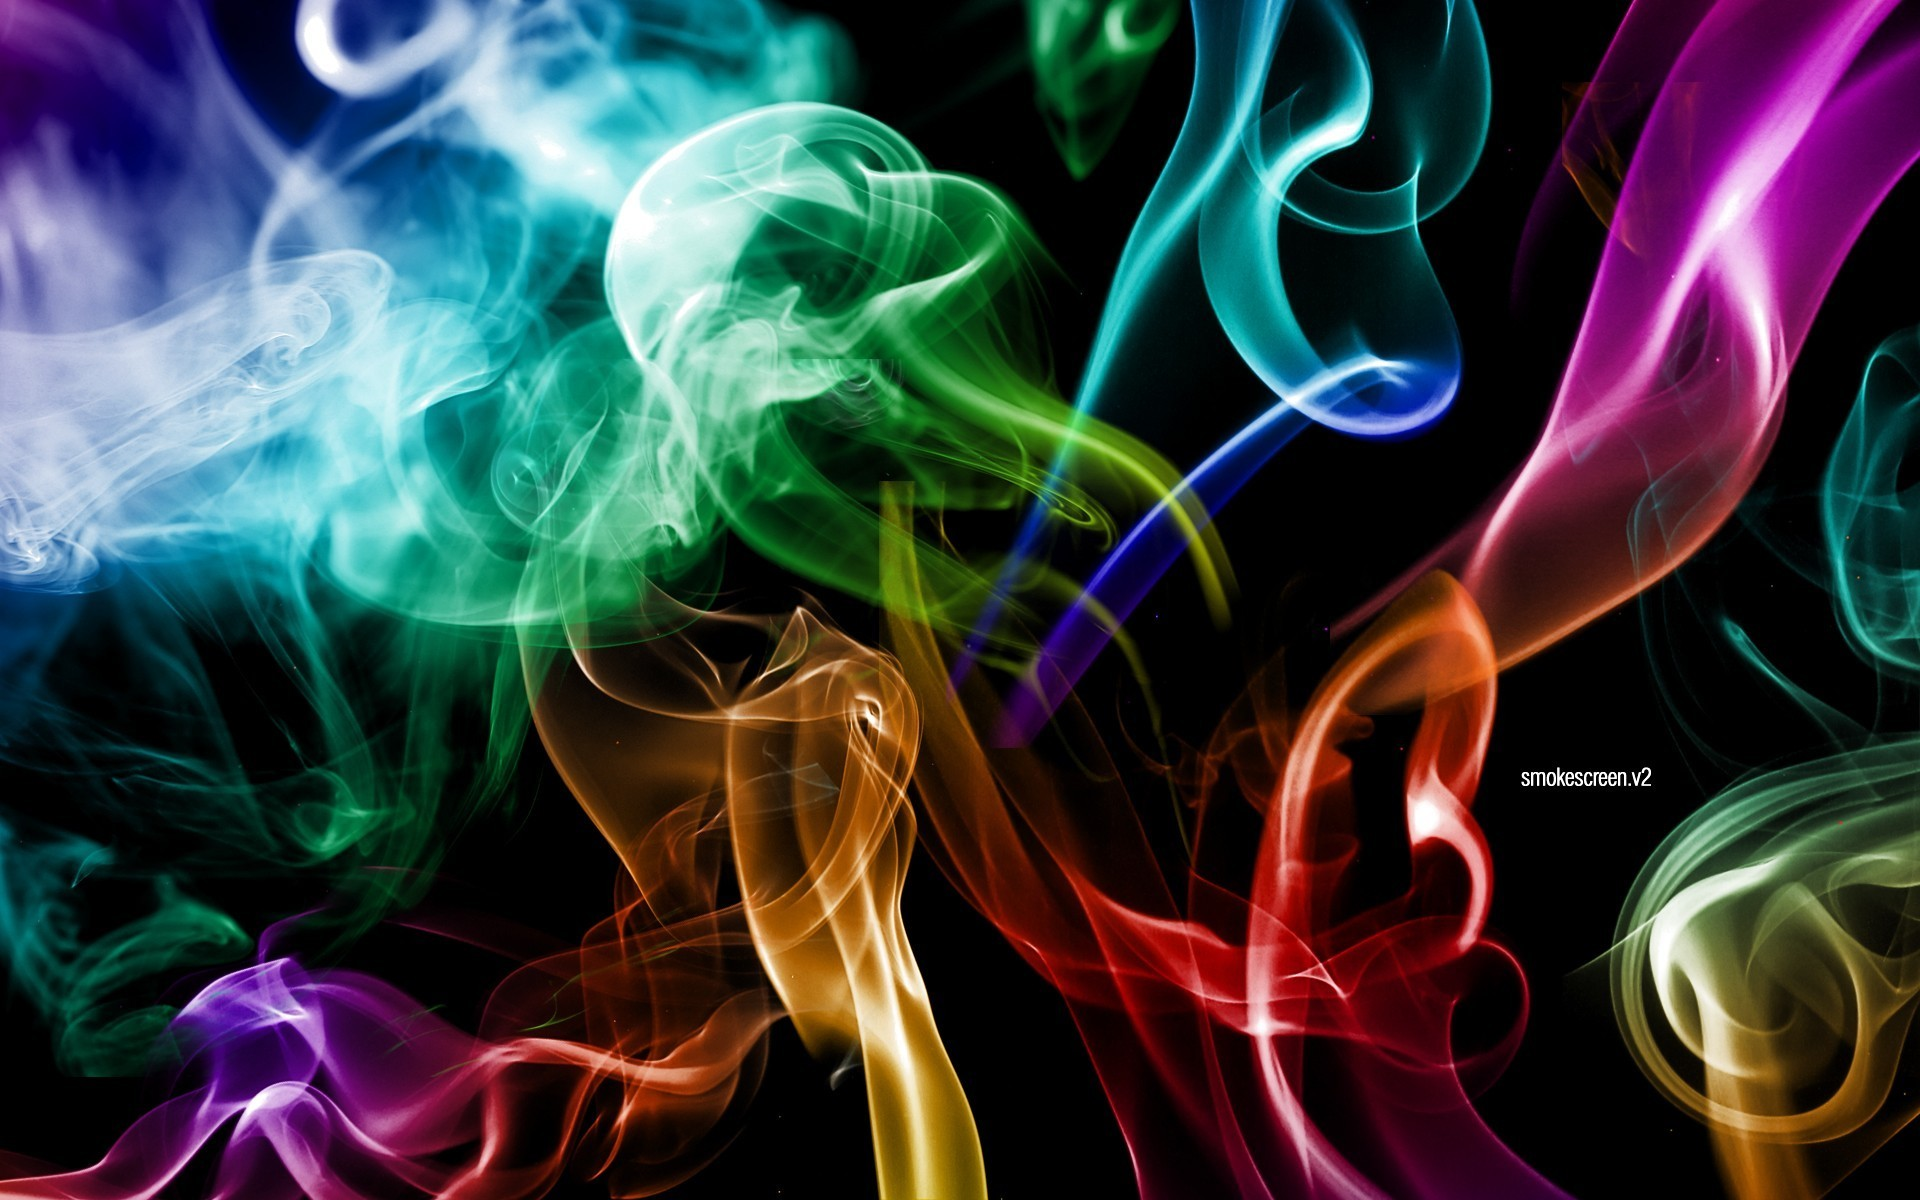 1920x1200  Hd Wallpaper Color | Smoke Colors